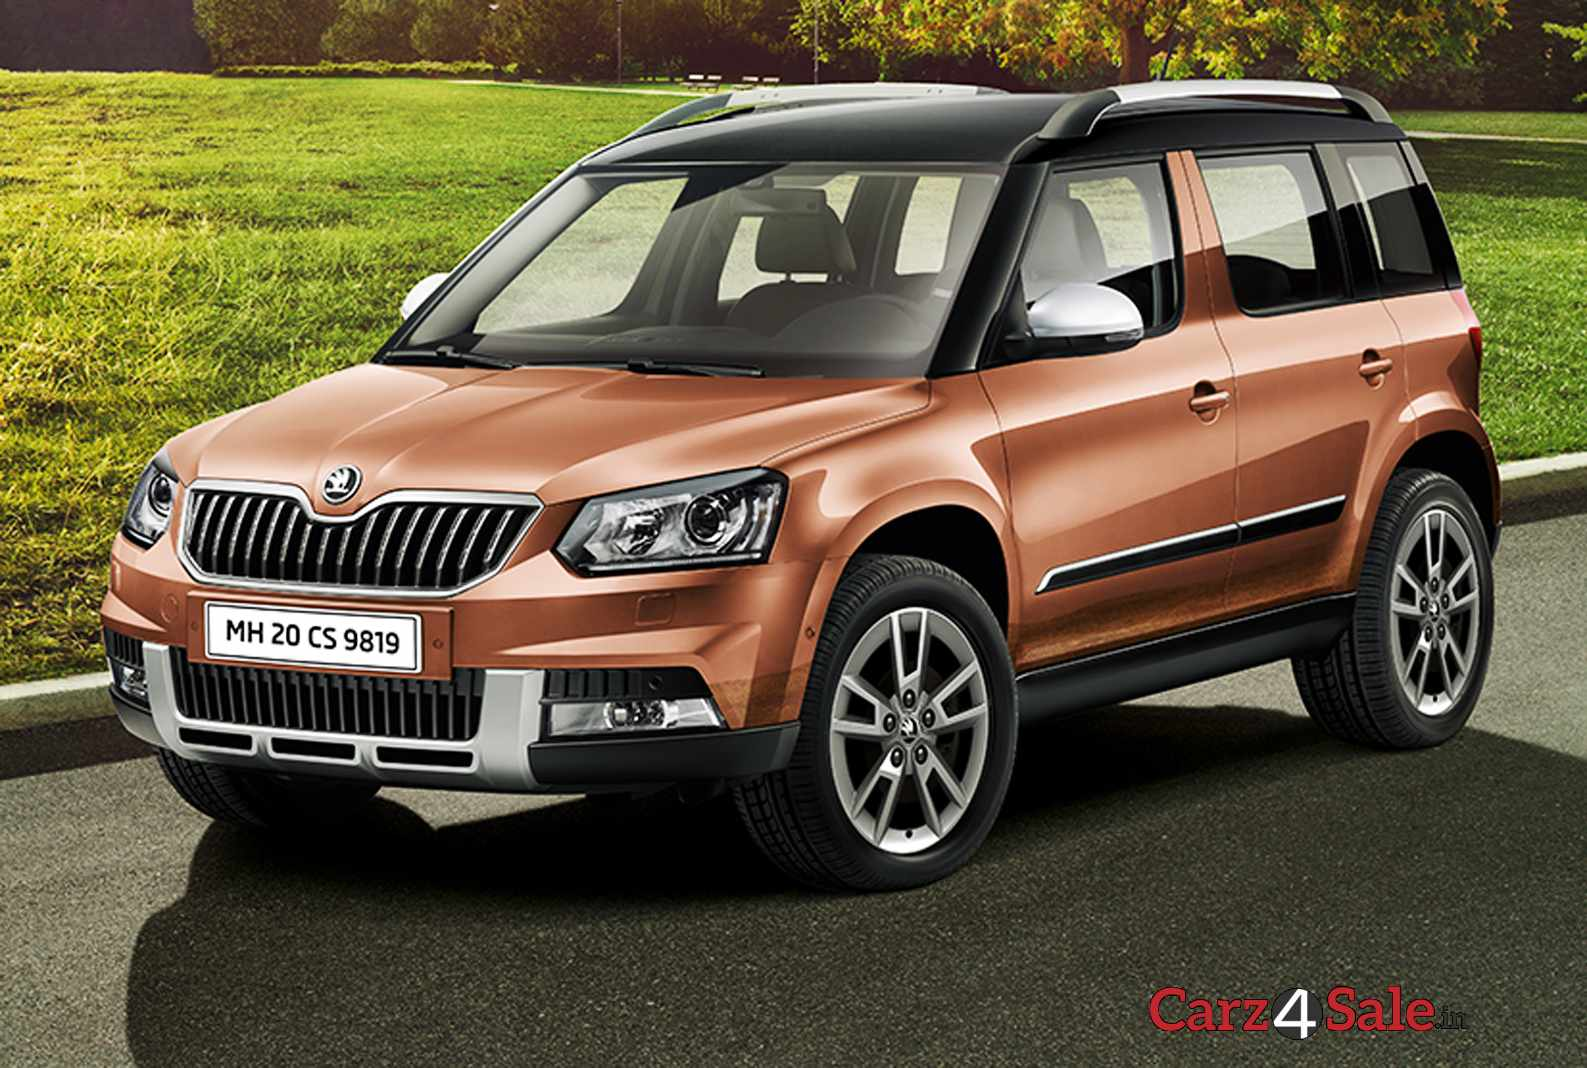 skoda yeti elegance 4x4 specifications features colours mileage reviews photos price and. Black Bedroom Furniture Sets. Home Design Ideas